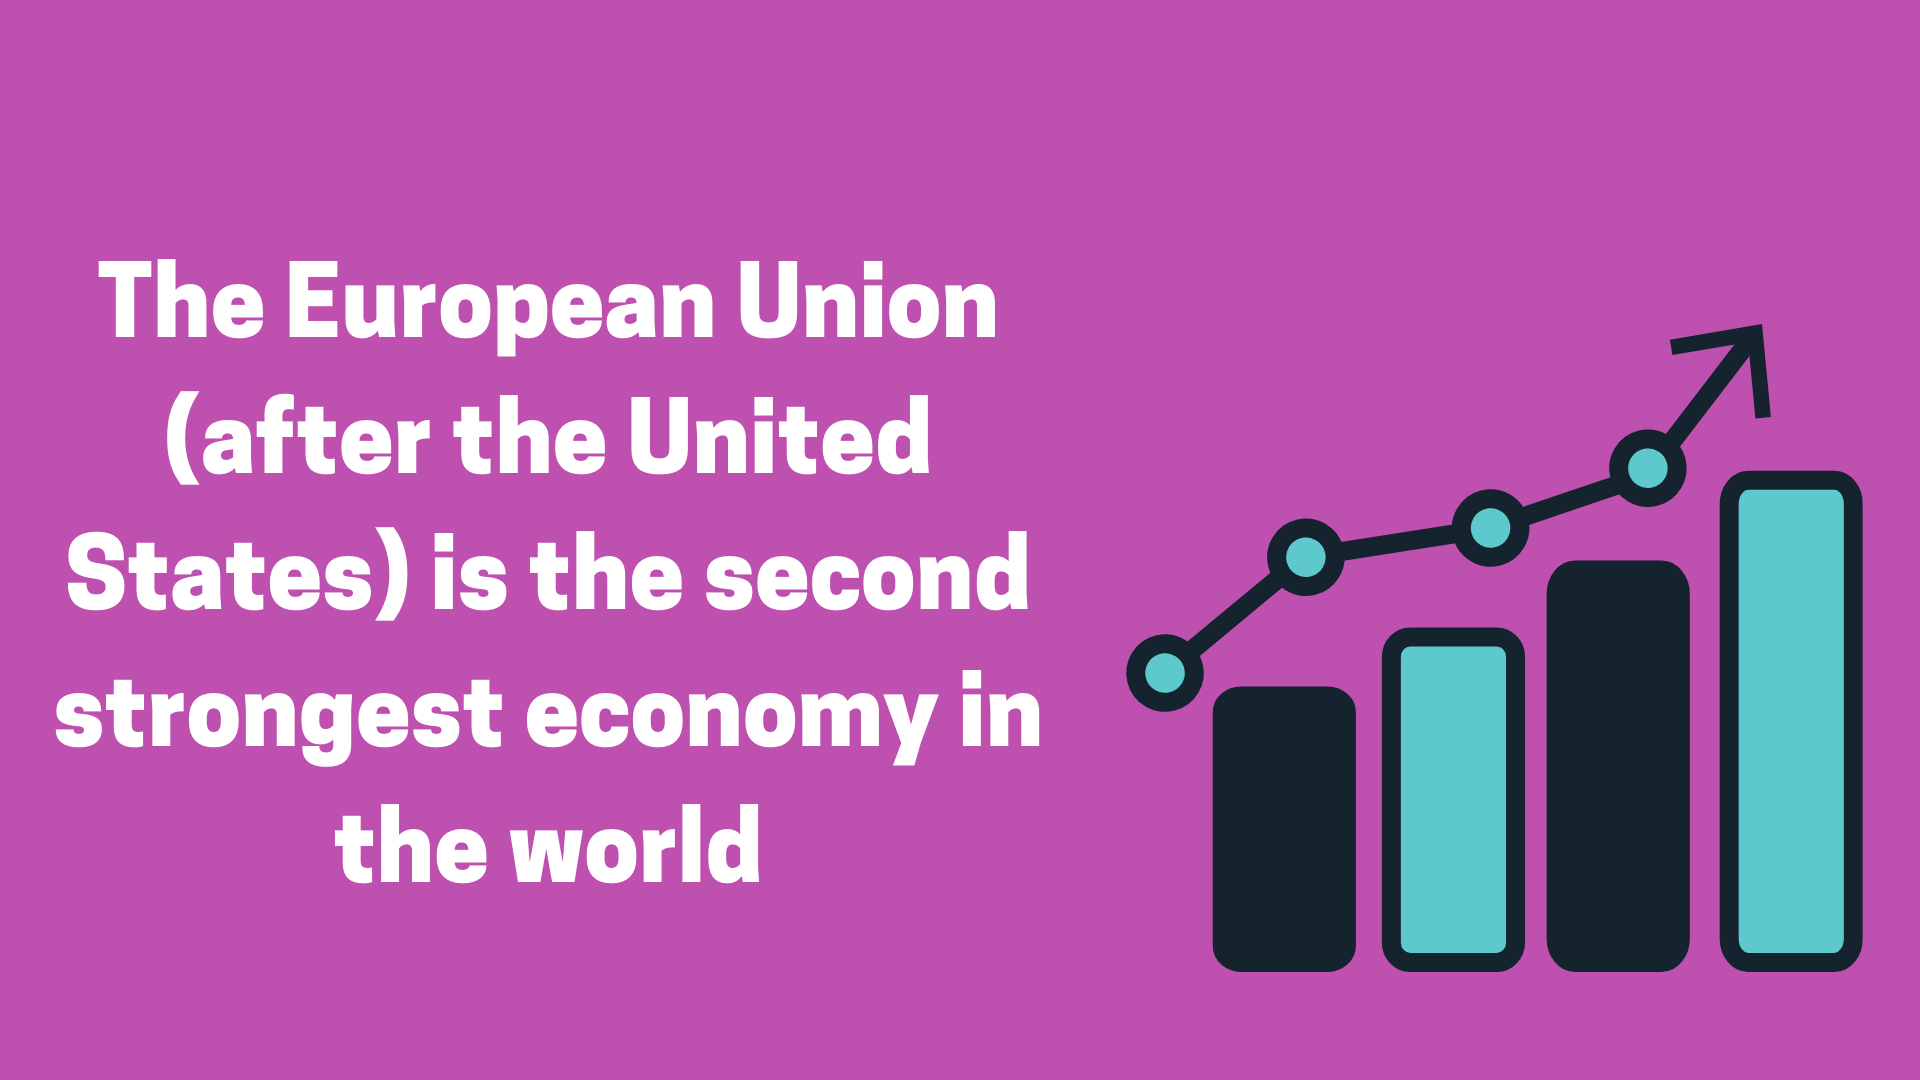 Europe is the Second Largest Economy